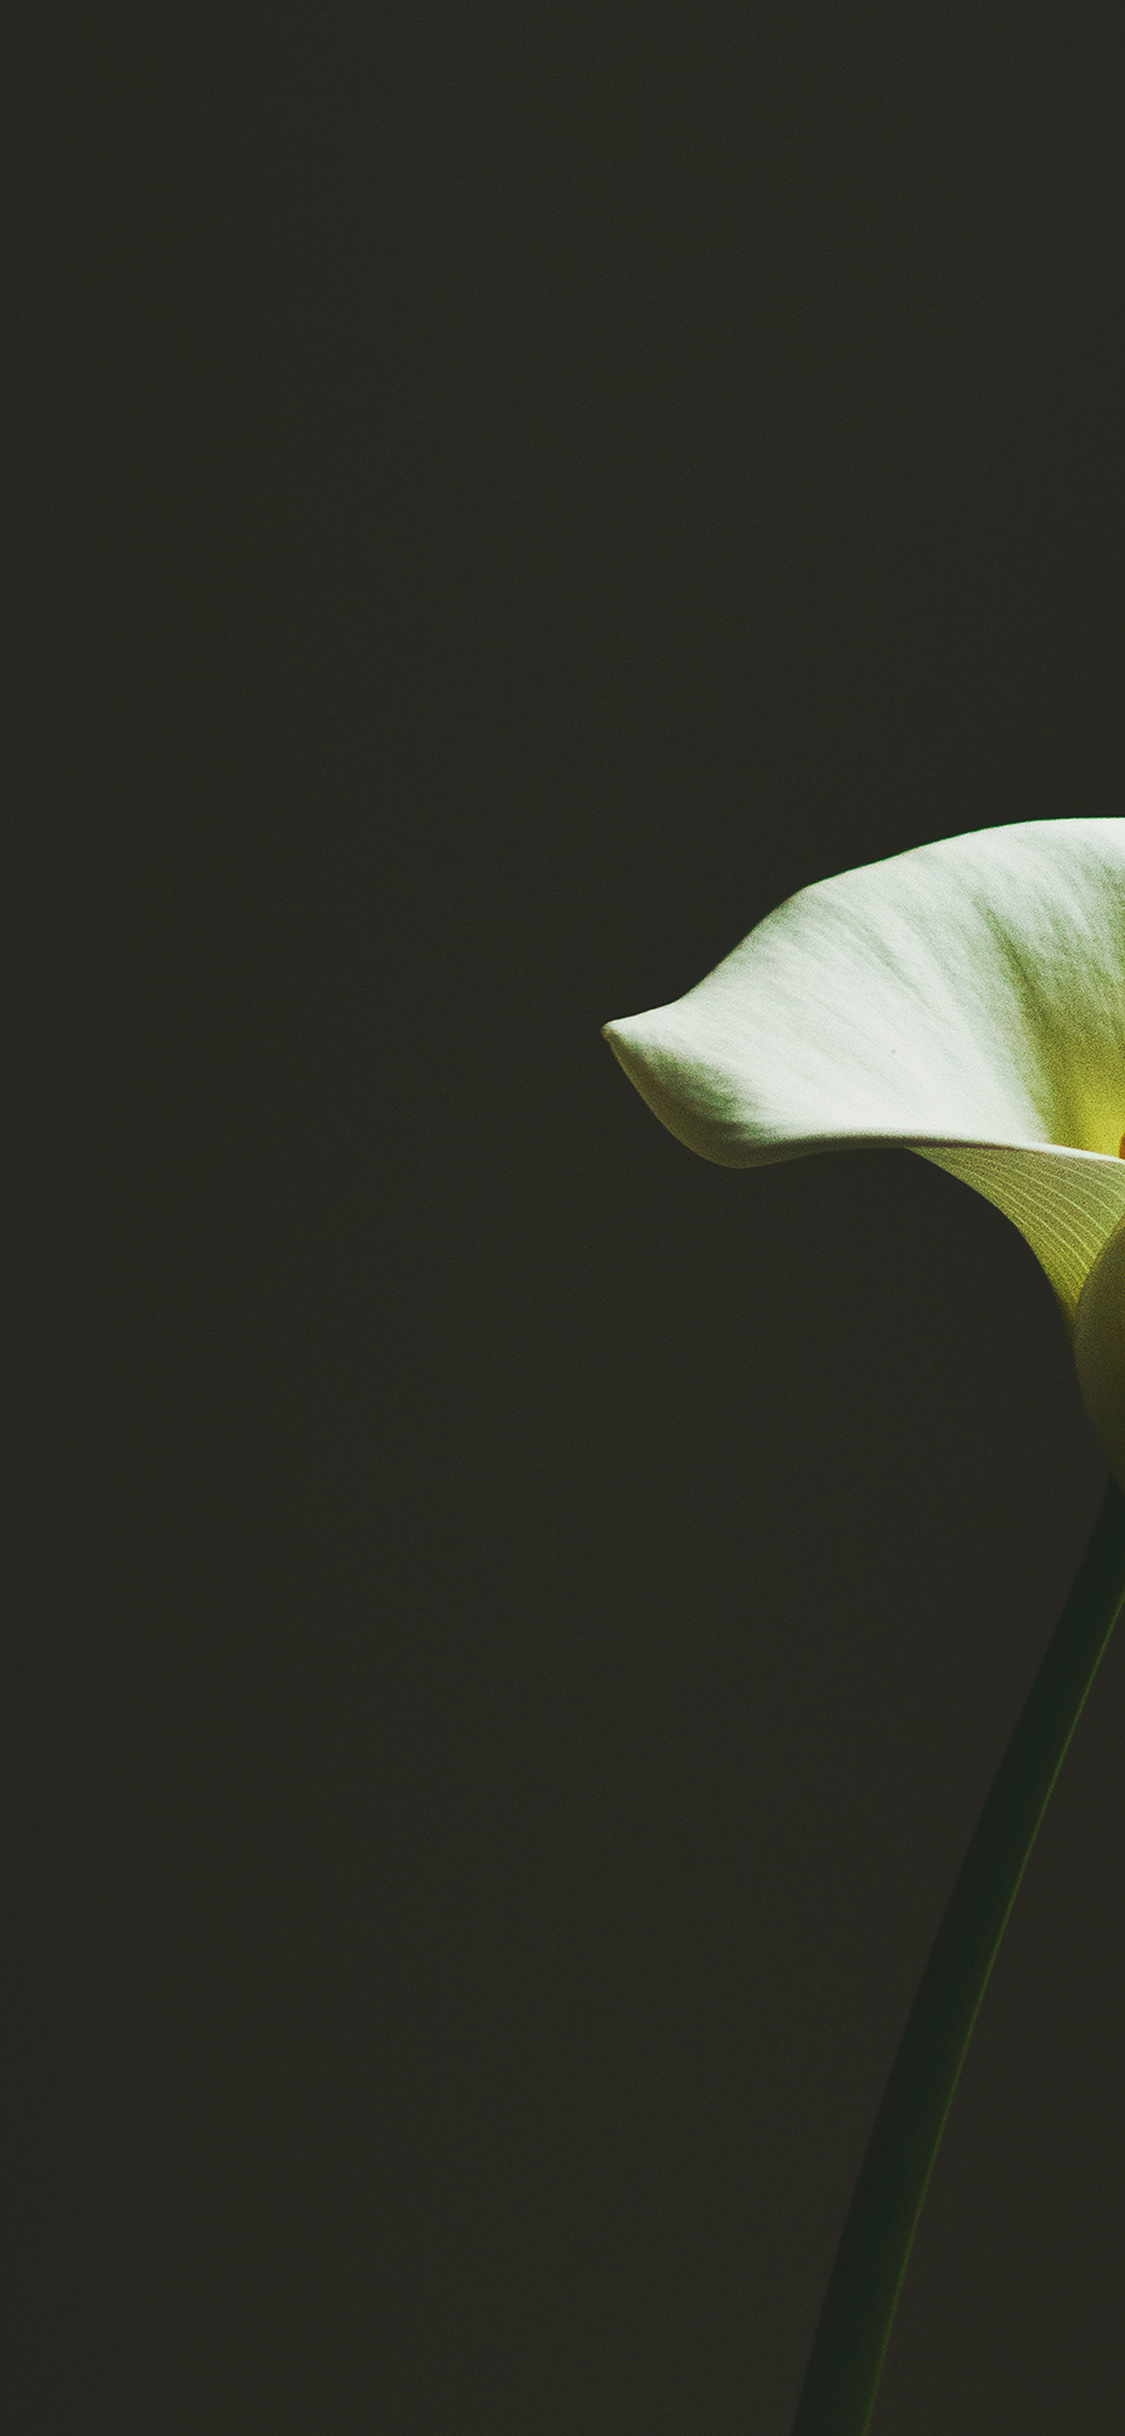 iPhoneXpapers.com-Apple-iPhone-wallpaper-mw34-lily-flower-minimal-simple-green-nature